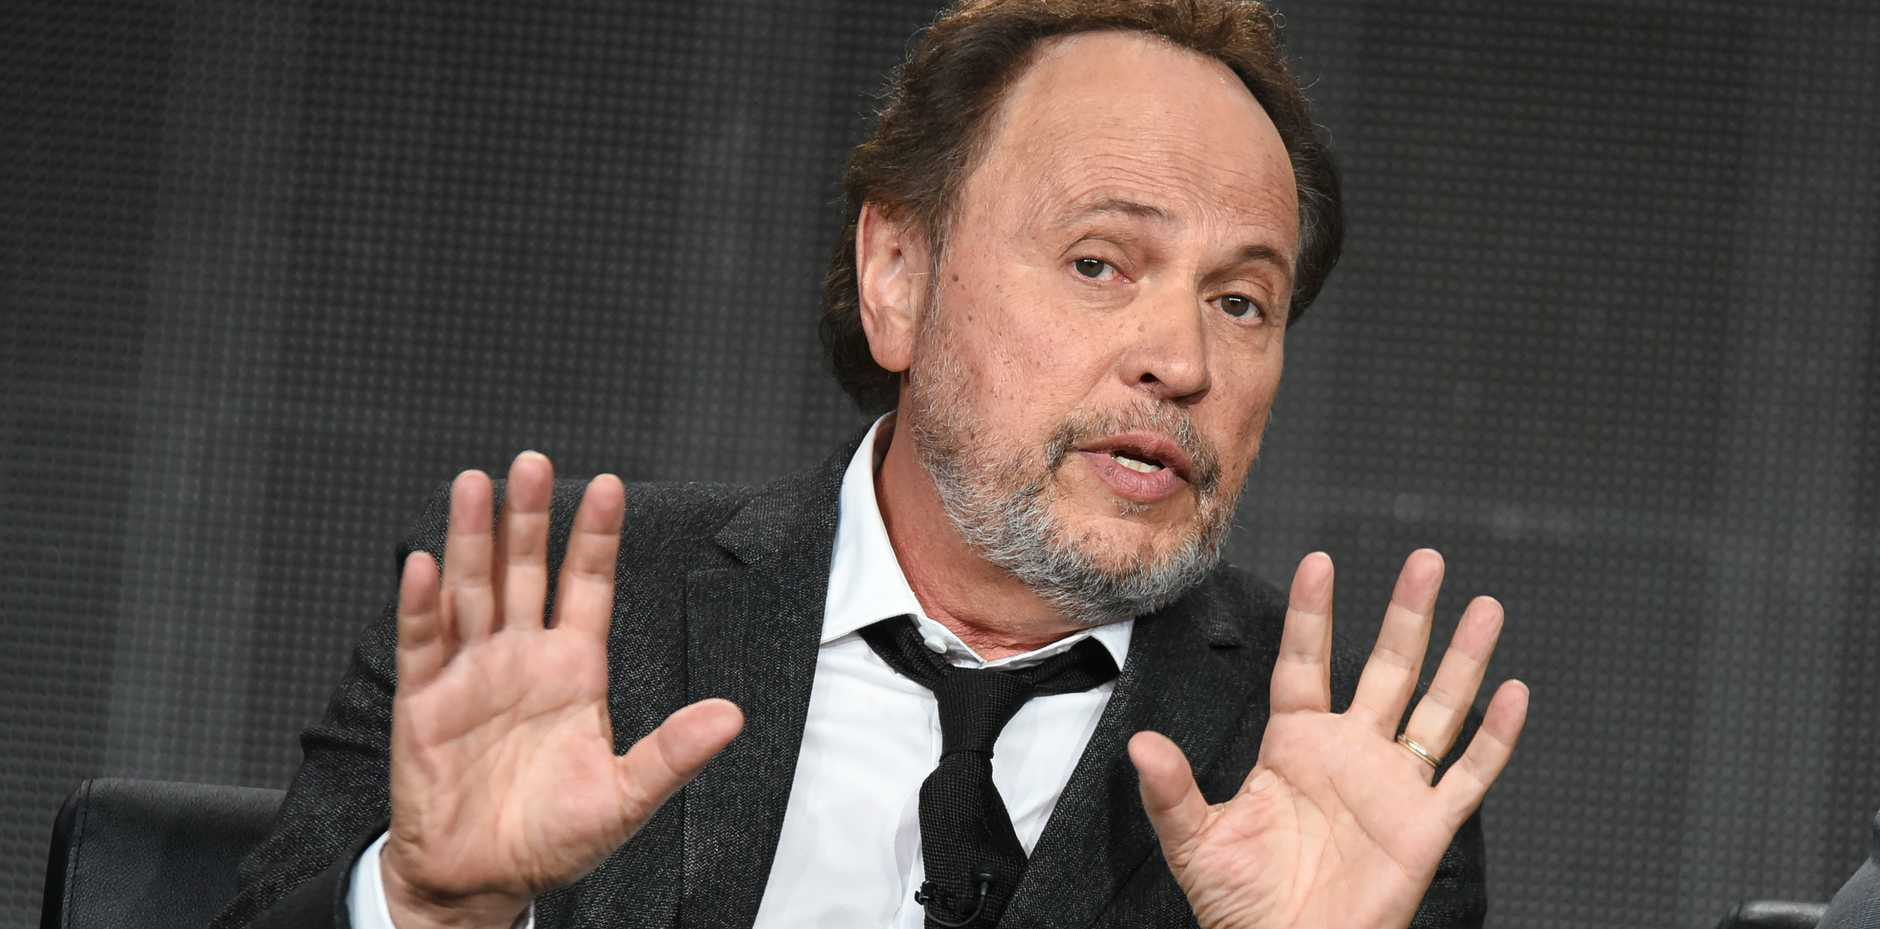 Billy Crystal says he's considering moving to New Zealand over the stress of Trump's high-profile bid to become president.